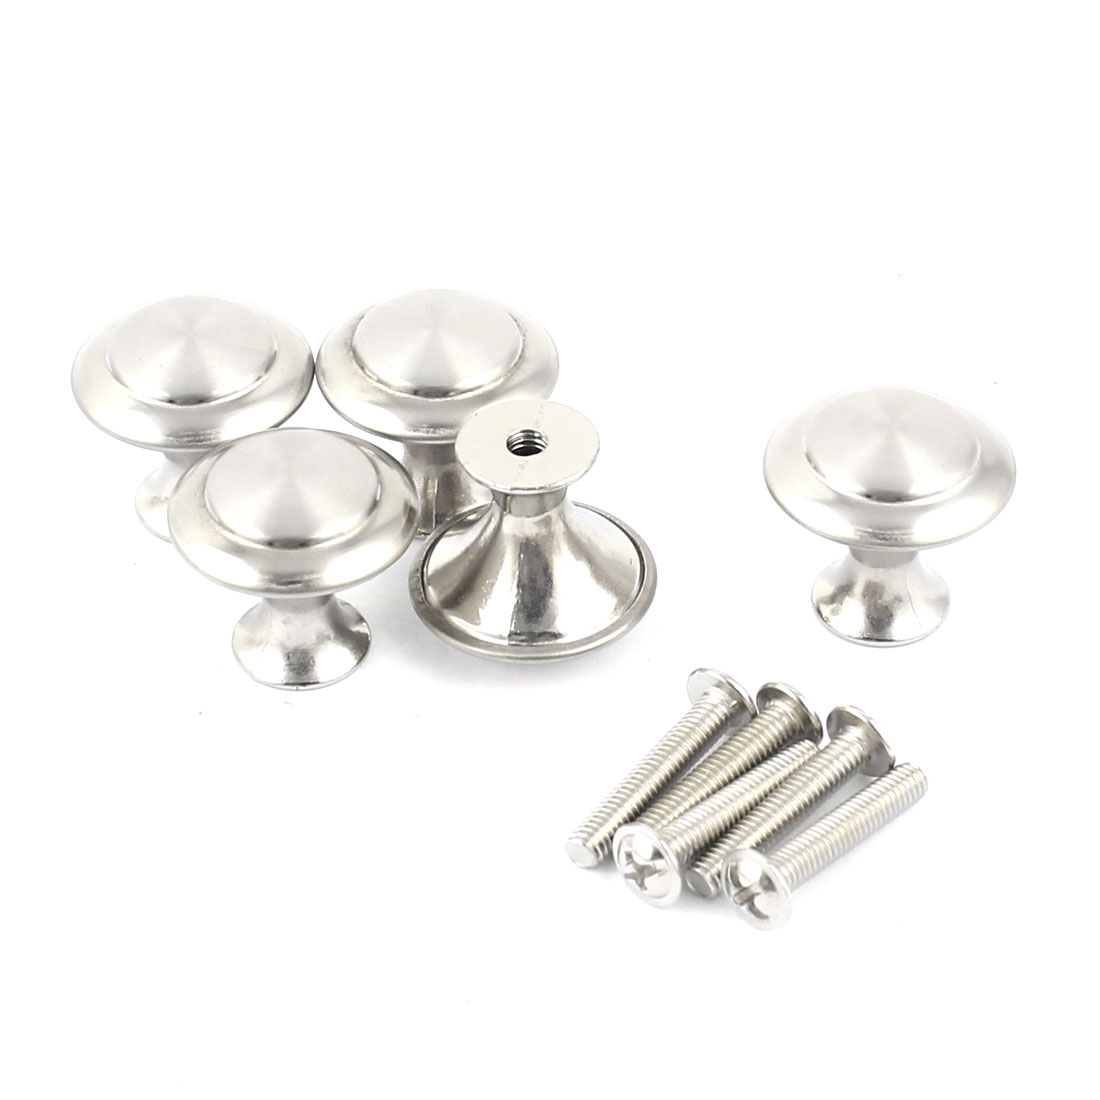 "Cabinet Stainless Steel 0.94"" Dia Round Pull Knob Handles 5 Pcs"